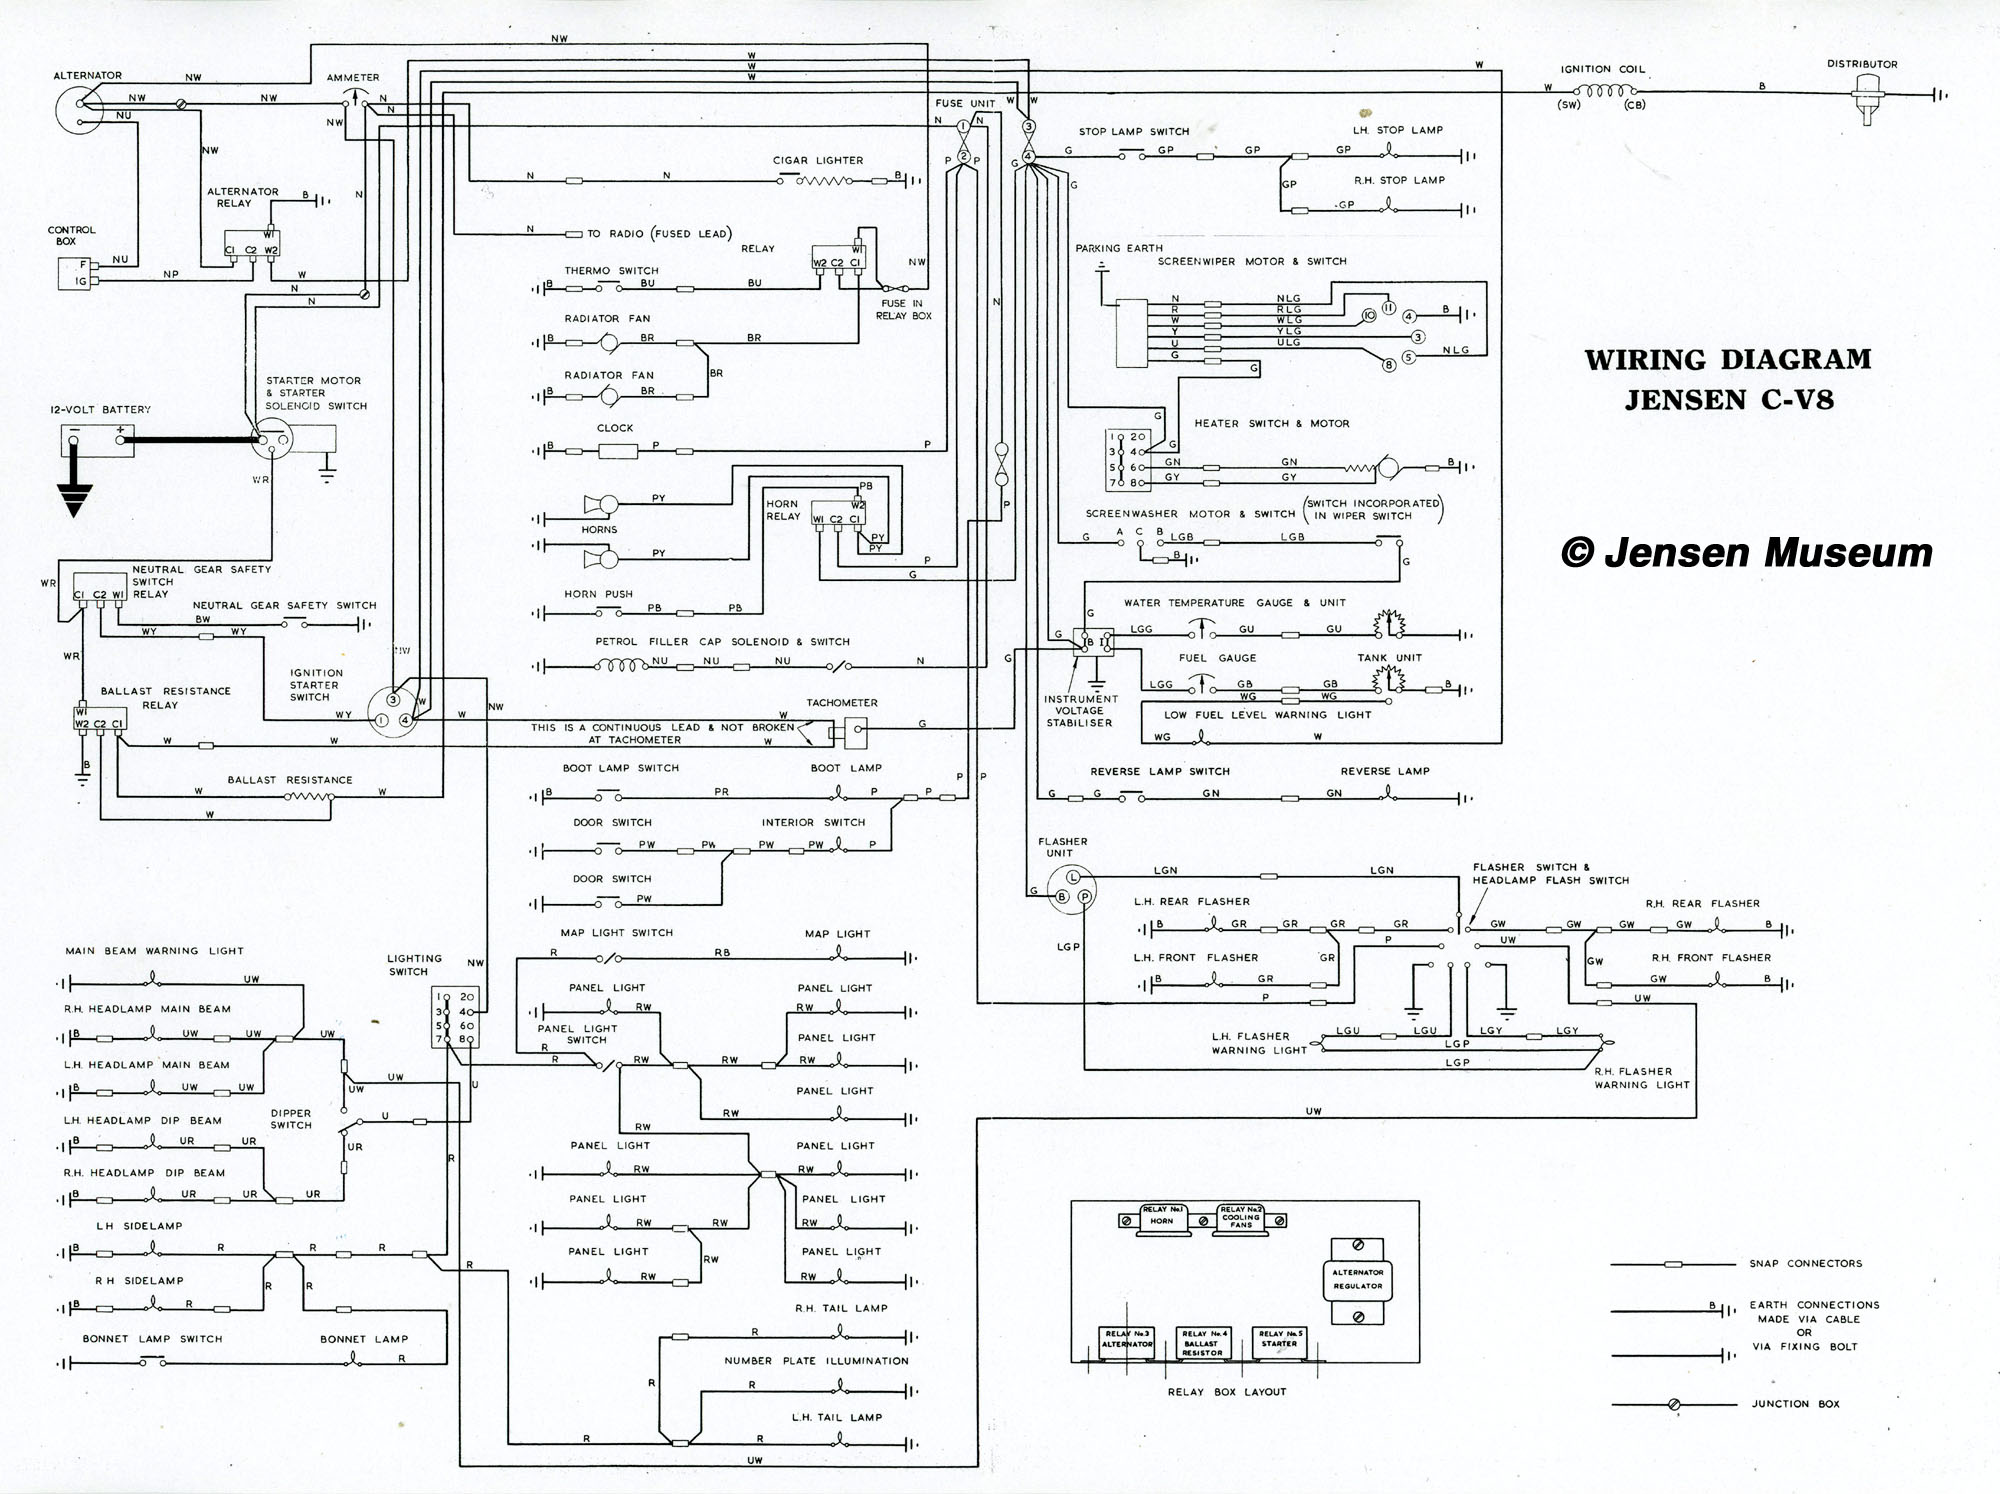 clarion dxz475mp wiring diagram single phase energy meter jenn vm9424 schwinn scooter